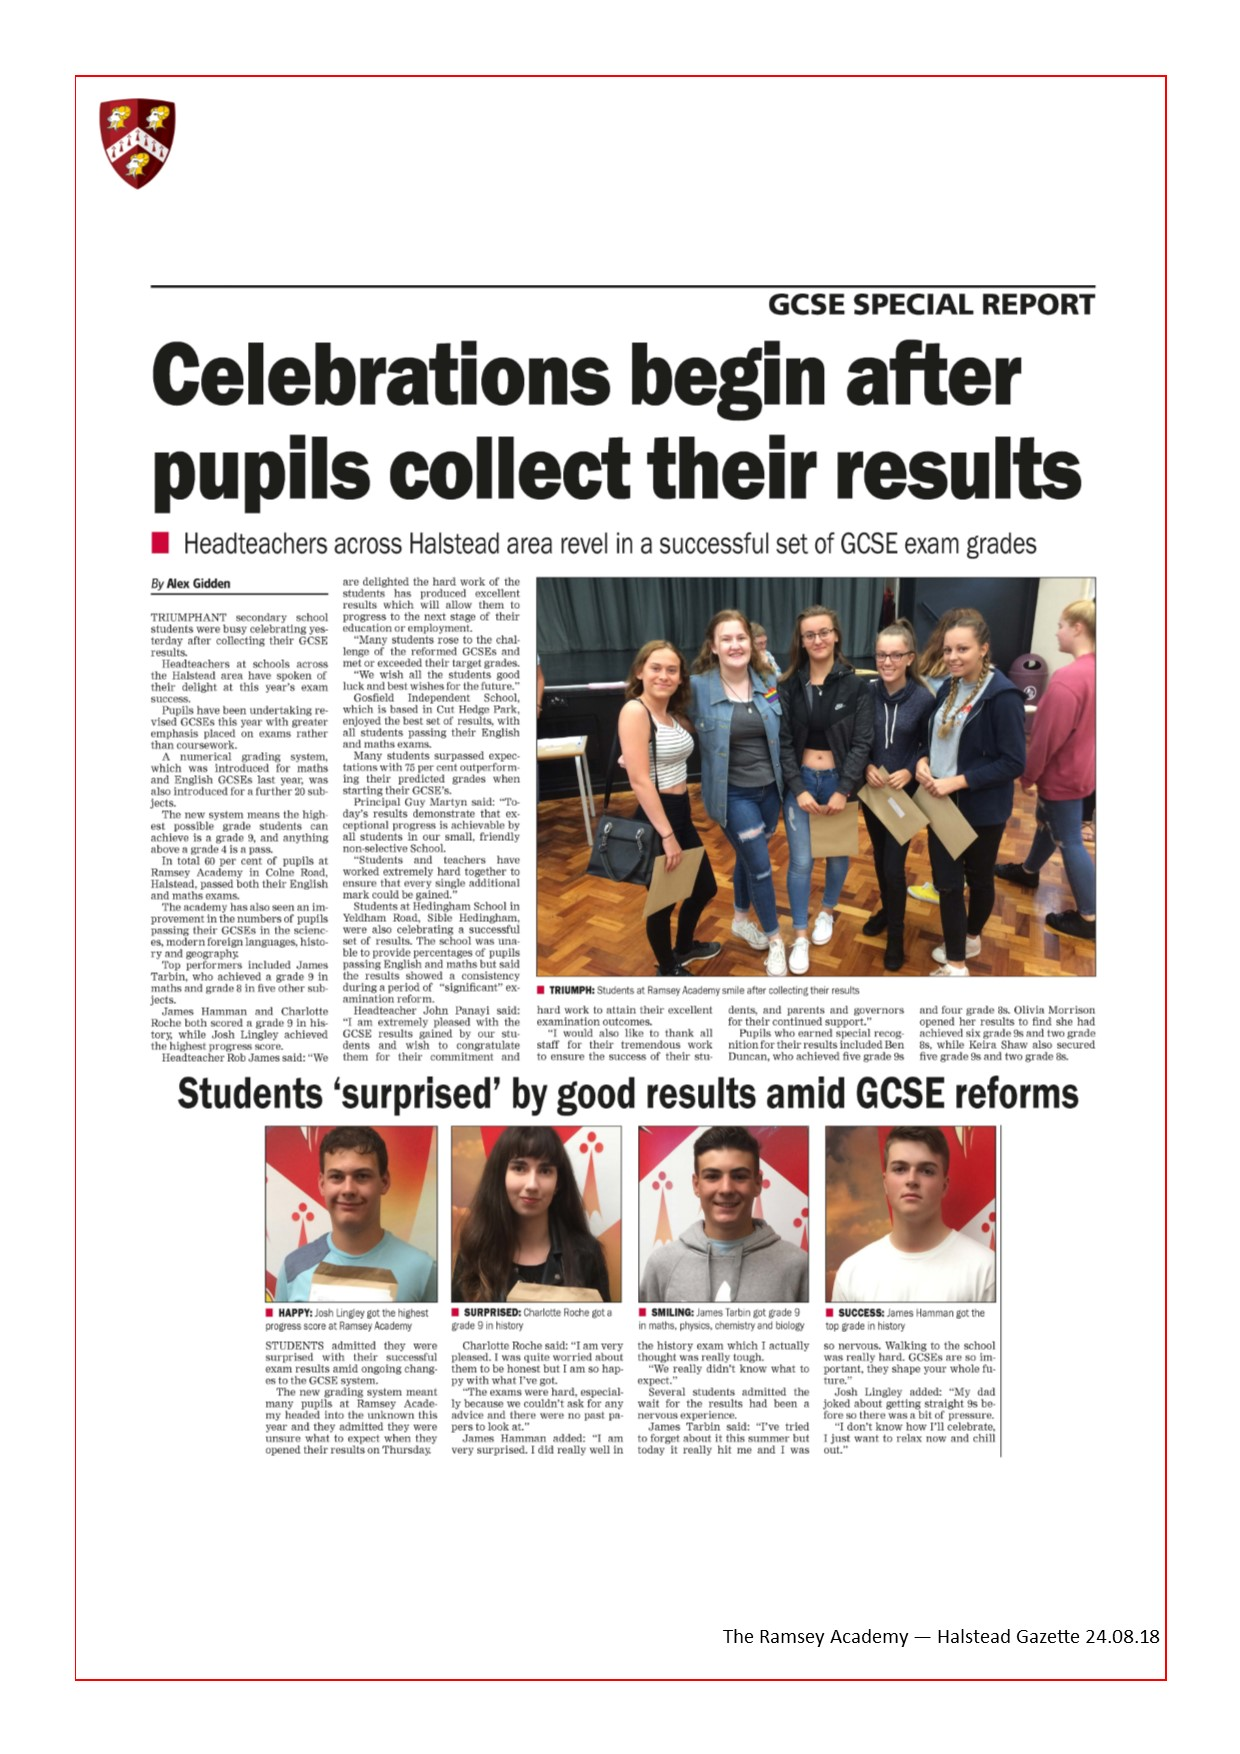 Celebrations Begin After Pupils Collect Their Results